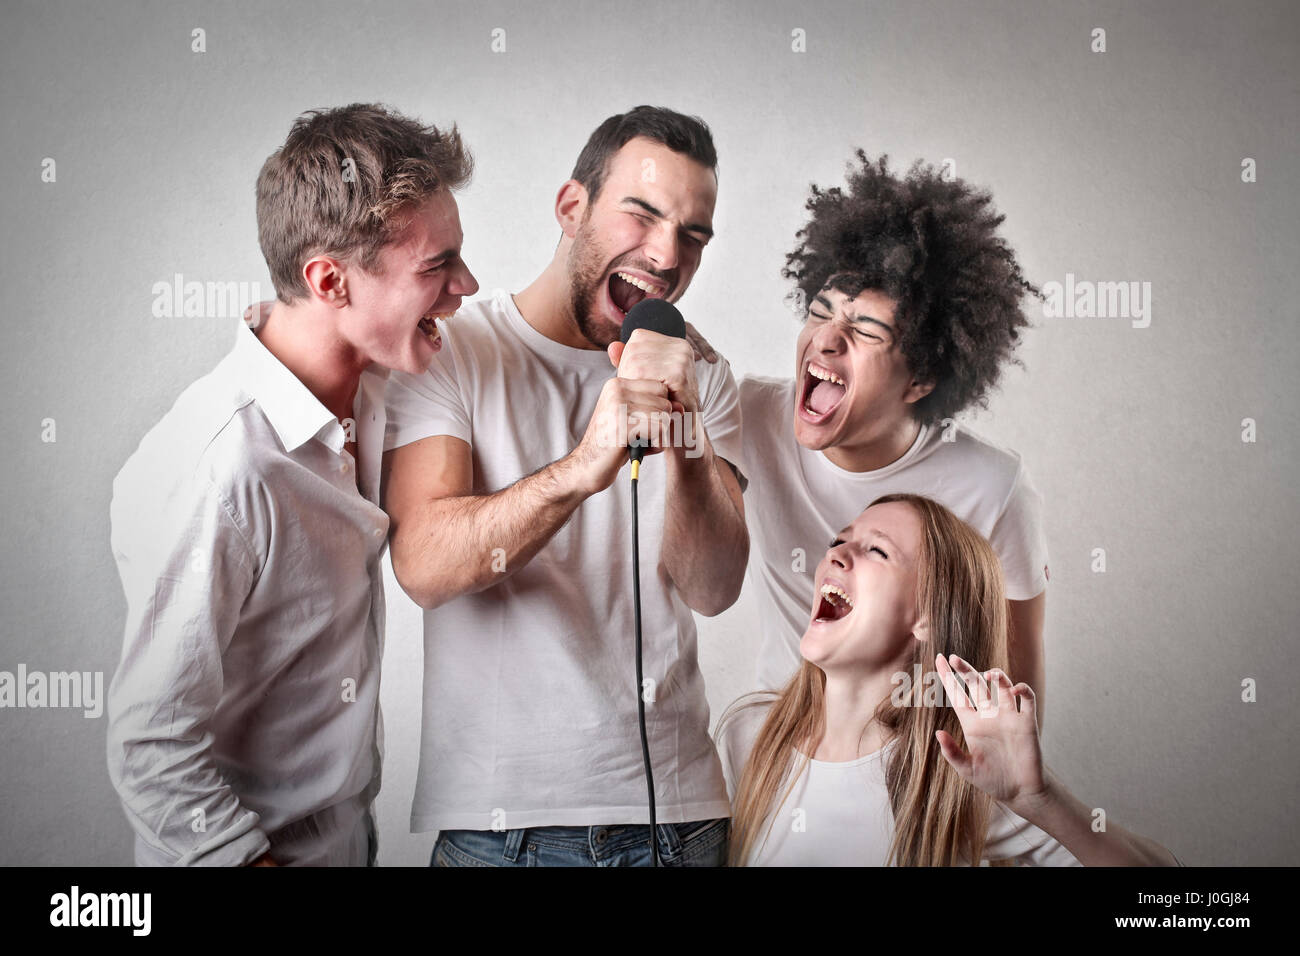 3 men and woman singing - Stock Image